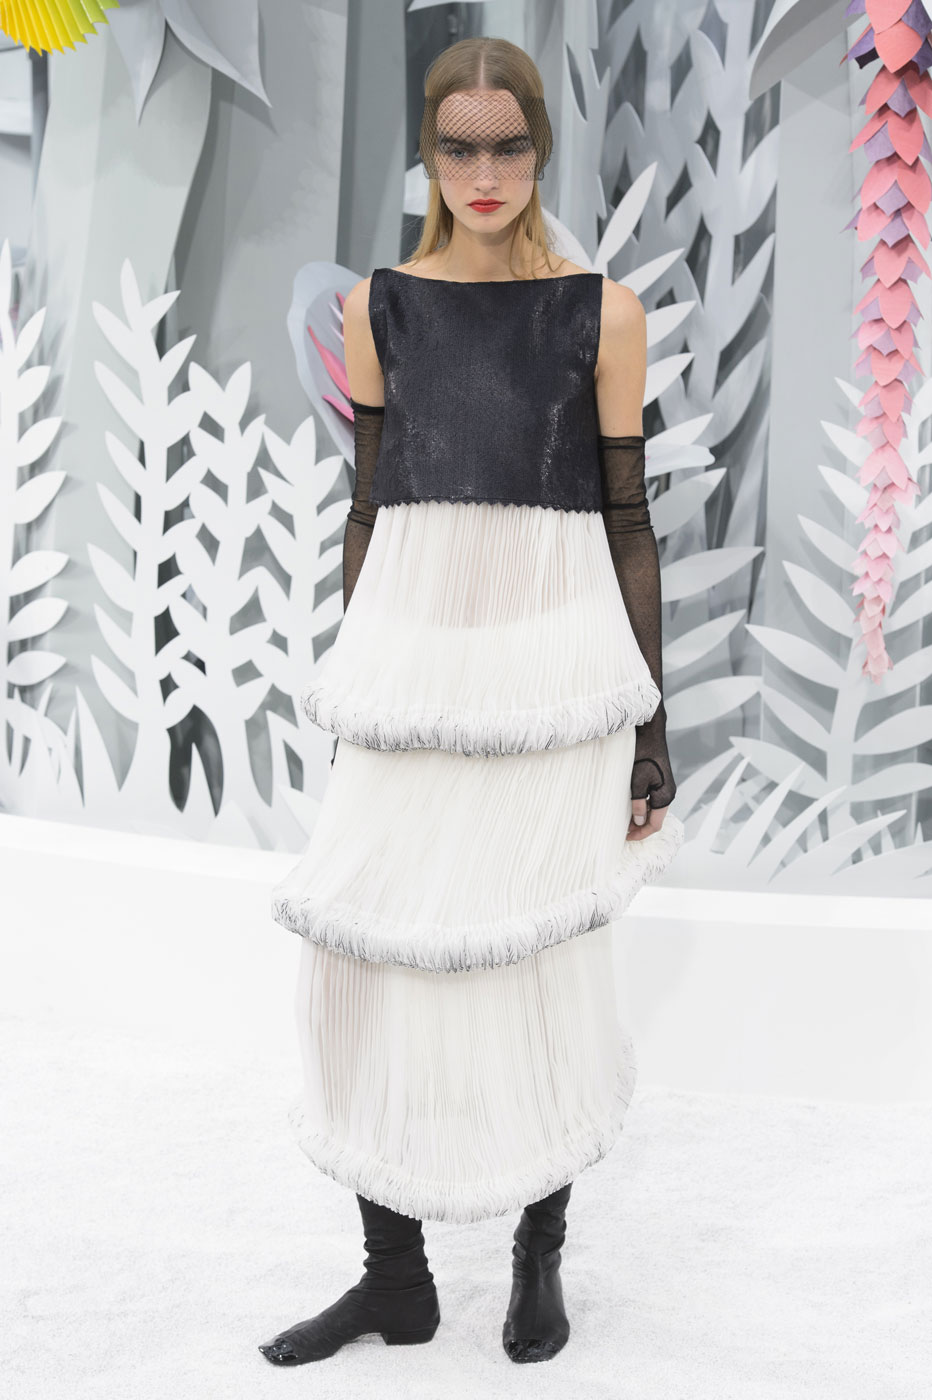 Chanel-fashion-runway-show-haute-couture-paris-spring-summer-2015-the-impression-117